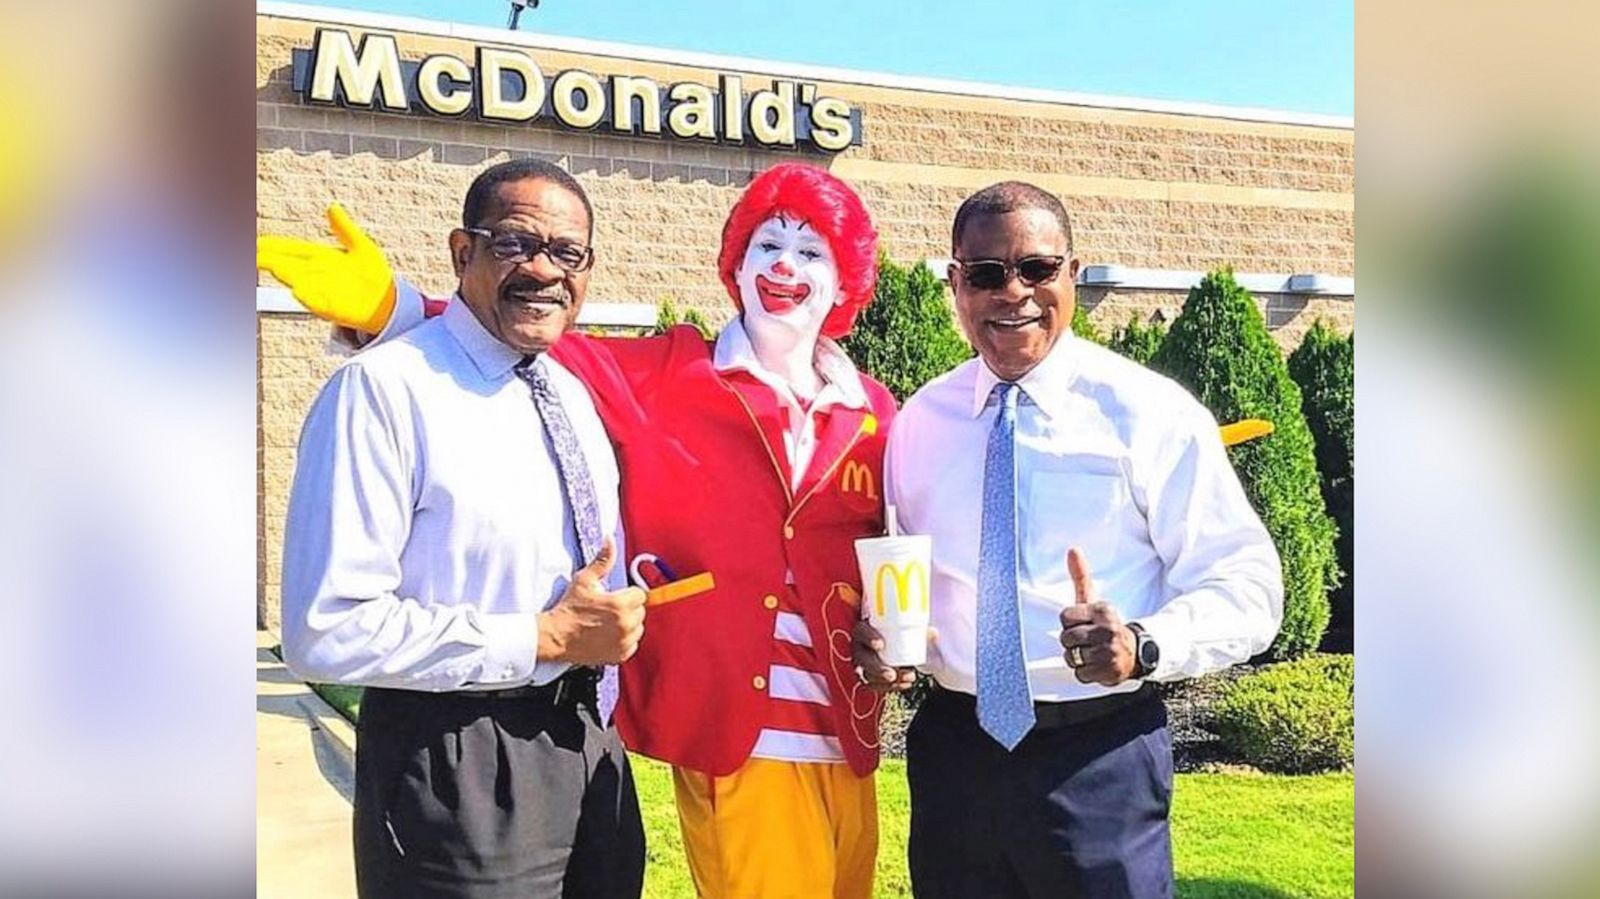 Two Black Franchisees Sue McDonald's for Racial Discrimination